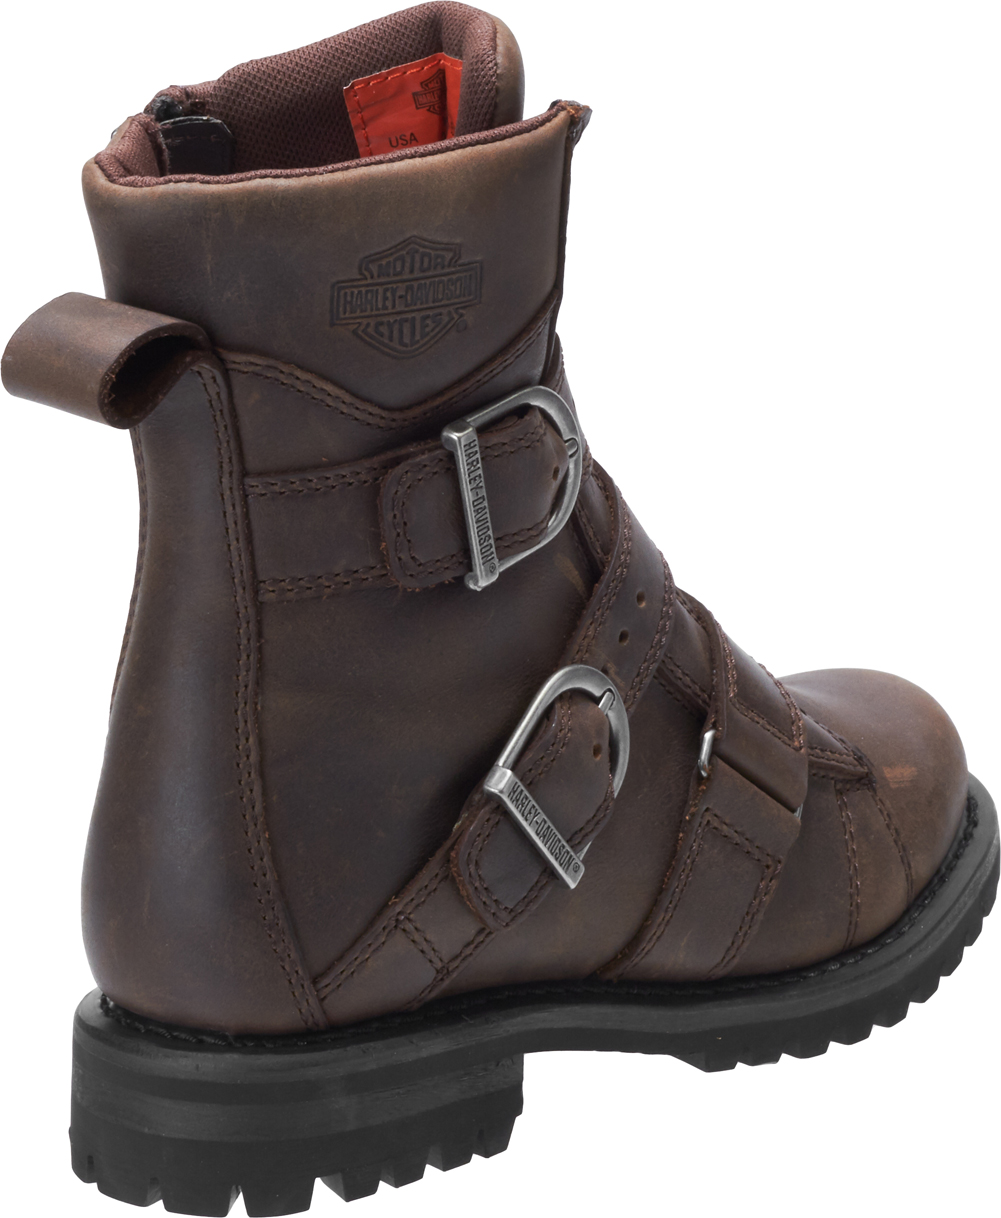 Harley-Davidson-Women-039-s-Hemford-6-75-Inch-Black-or-Brown-Motorcycle-Boots-D84470 thumbnail 11